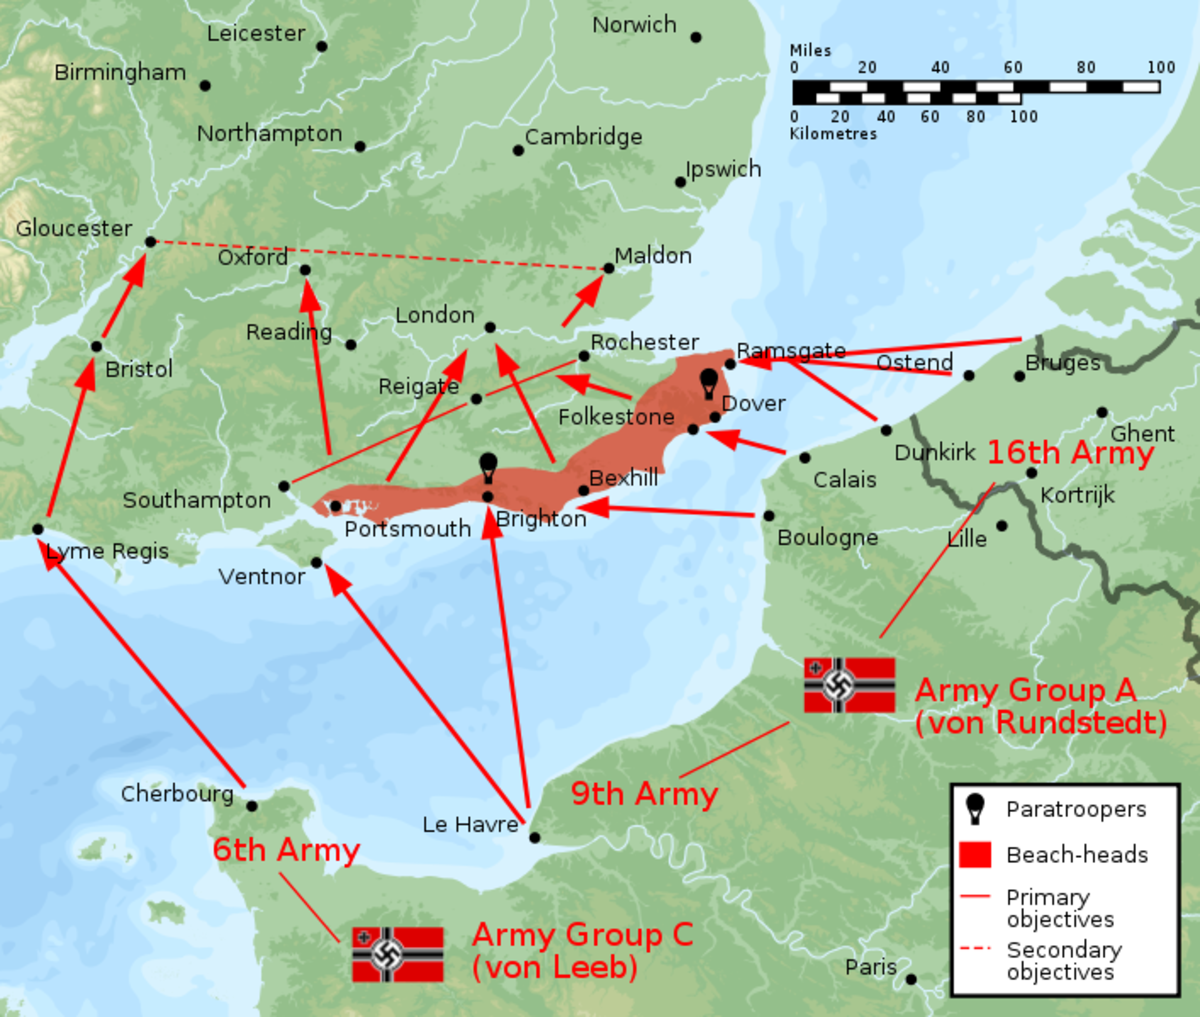 The German invasion plan shows that their primary objective was securing the Kent and Hampshire coast before striking north towards London.